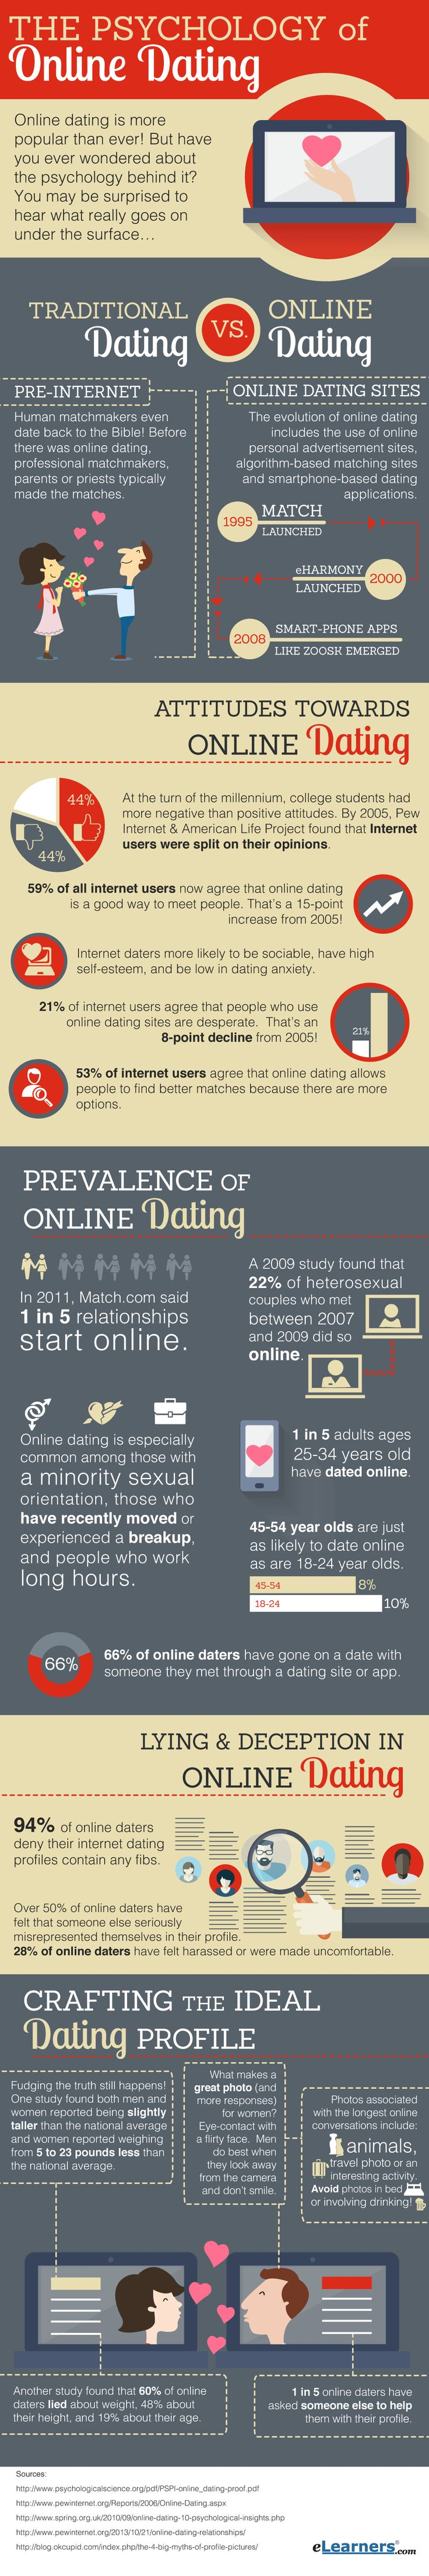 Why Online Dating Is a Poor Way to Find Love